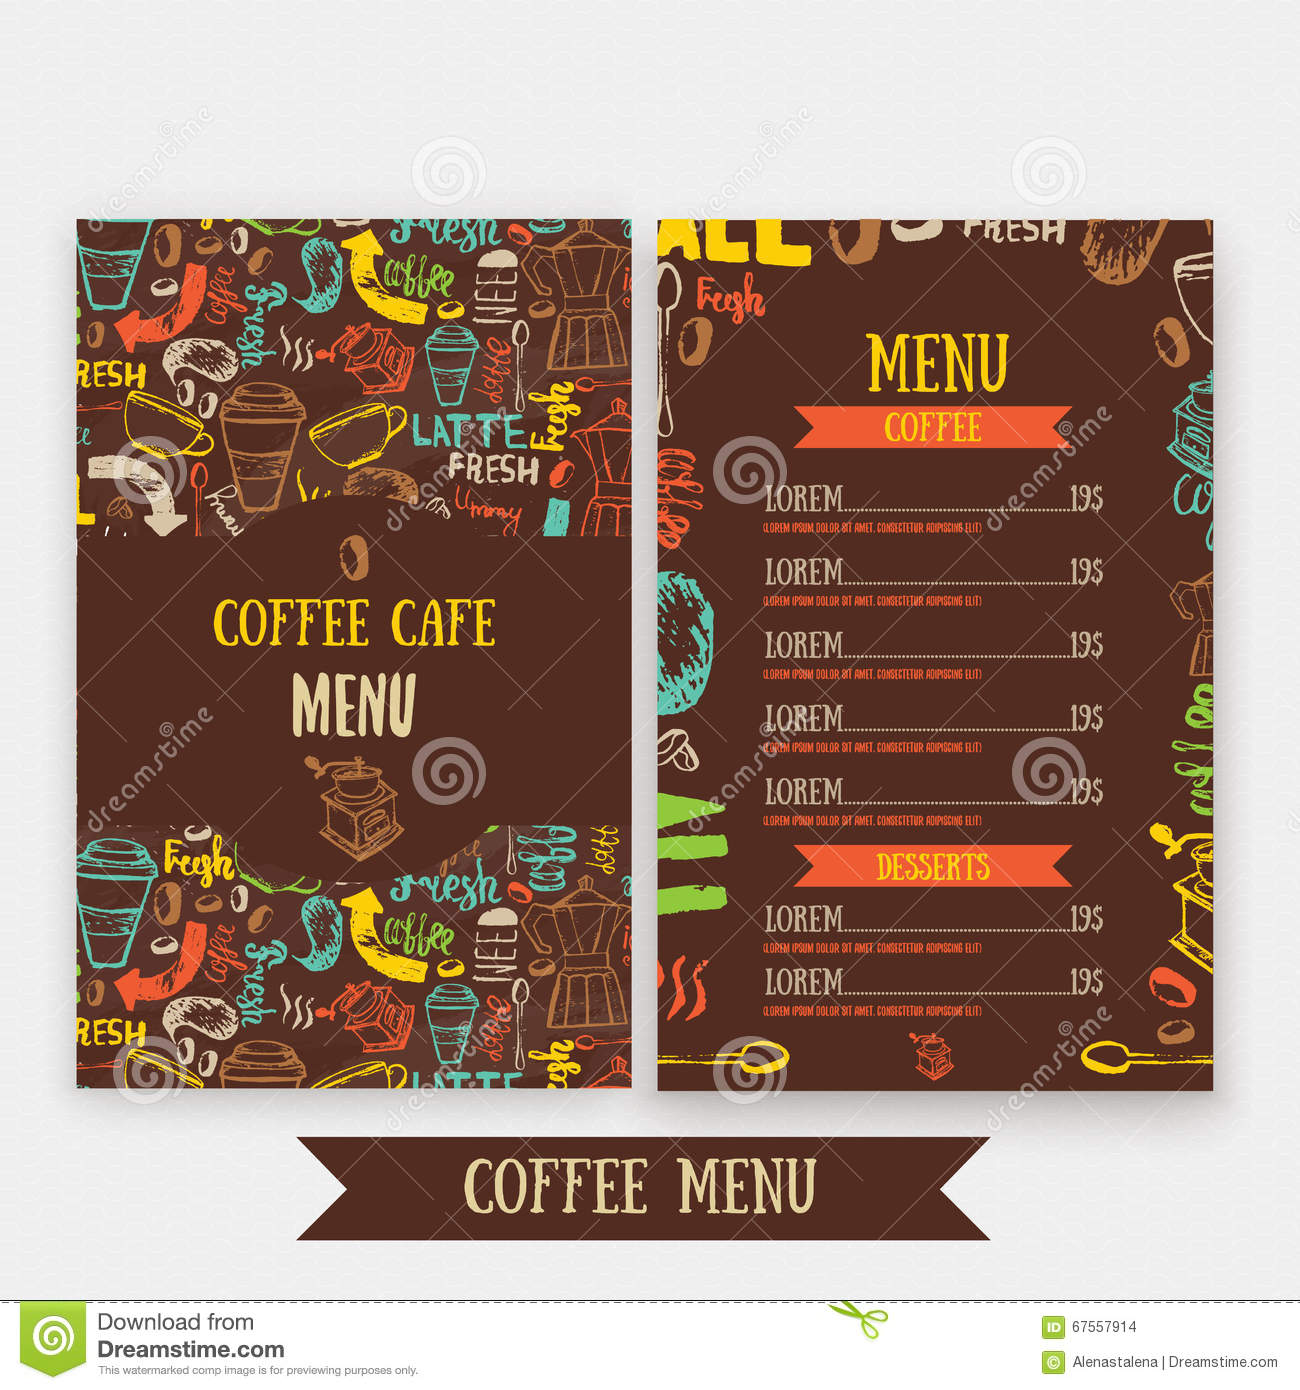 Cafe Menu Template Design With Lettering For Coffee Shop